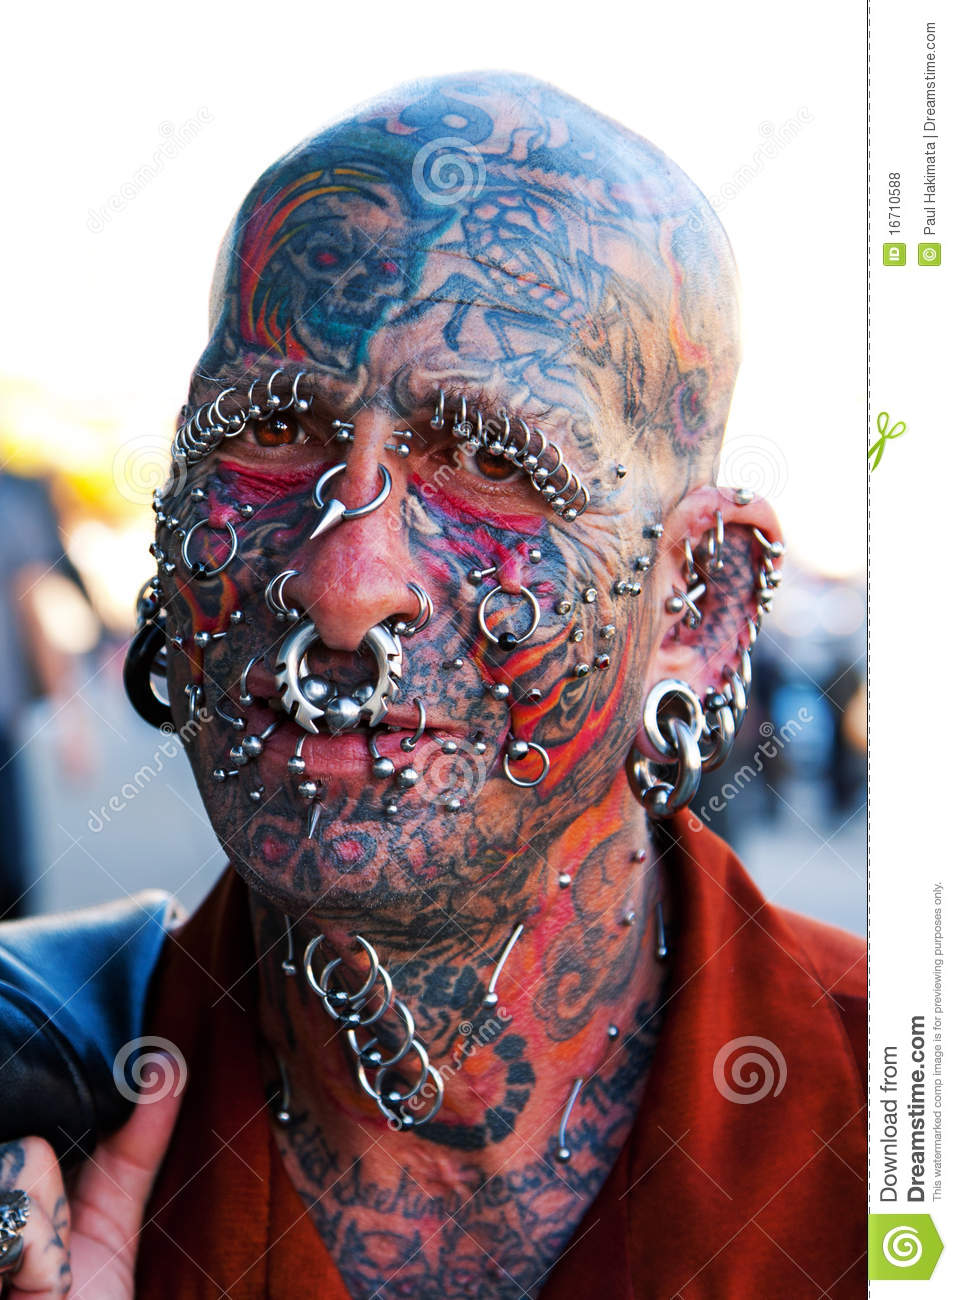 Face With <b>Tattoos And Piercings</b> Stock Photo 16710588 - Megapixl